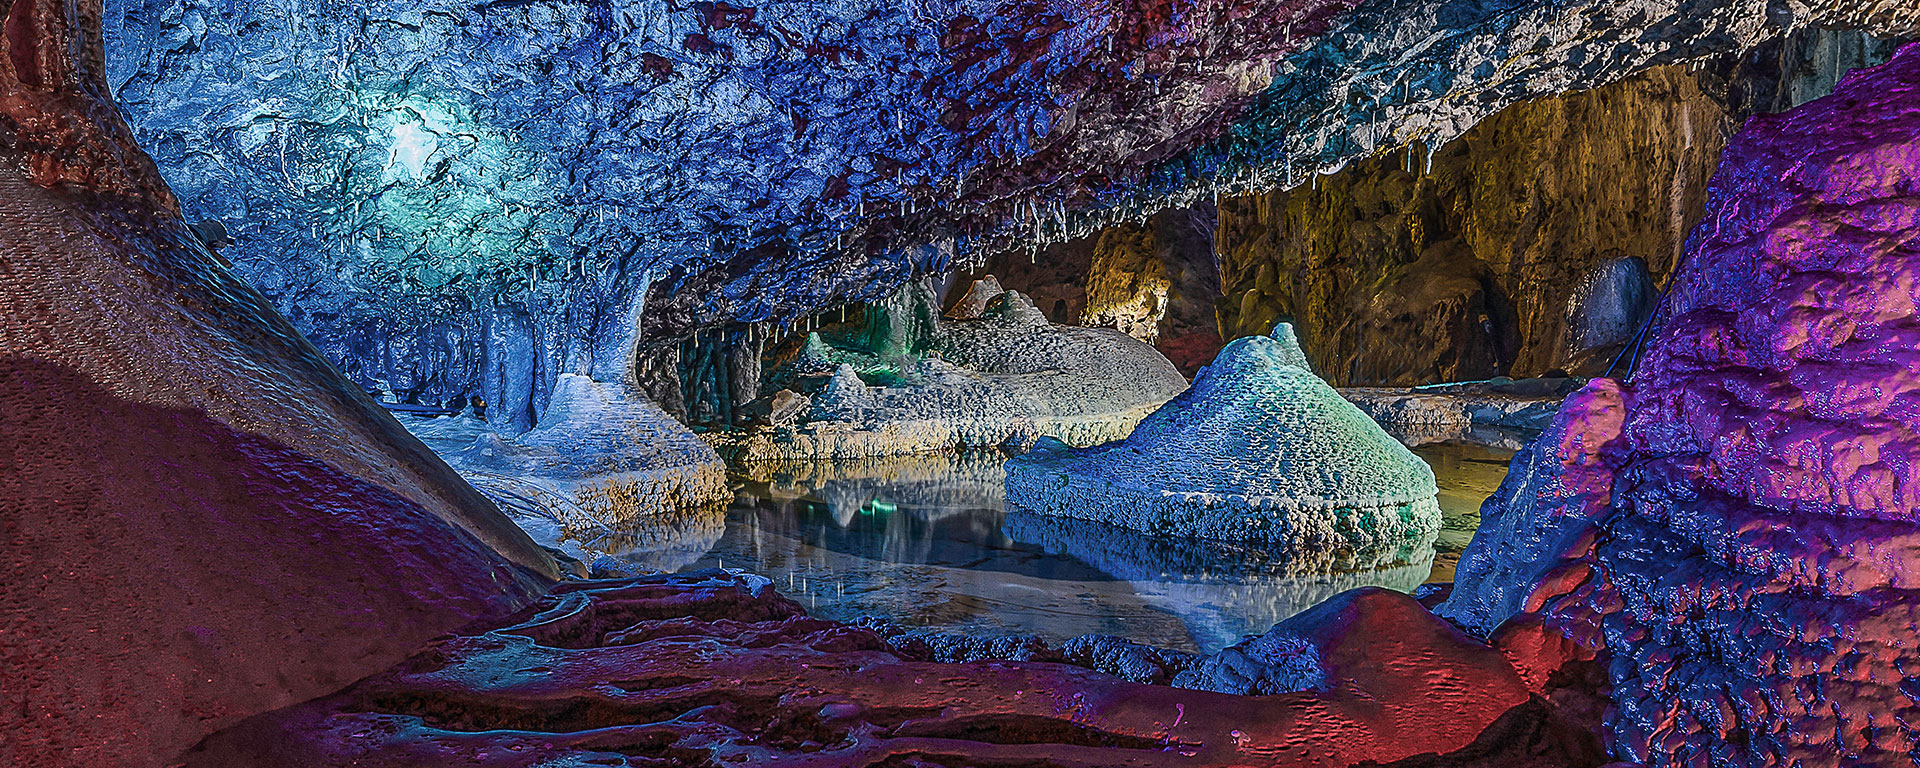 Wookey Hole Caves - Somerset, England